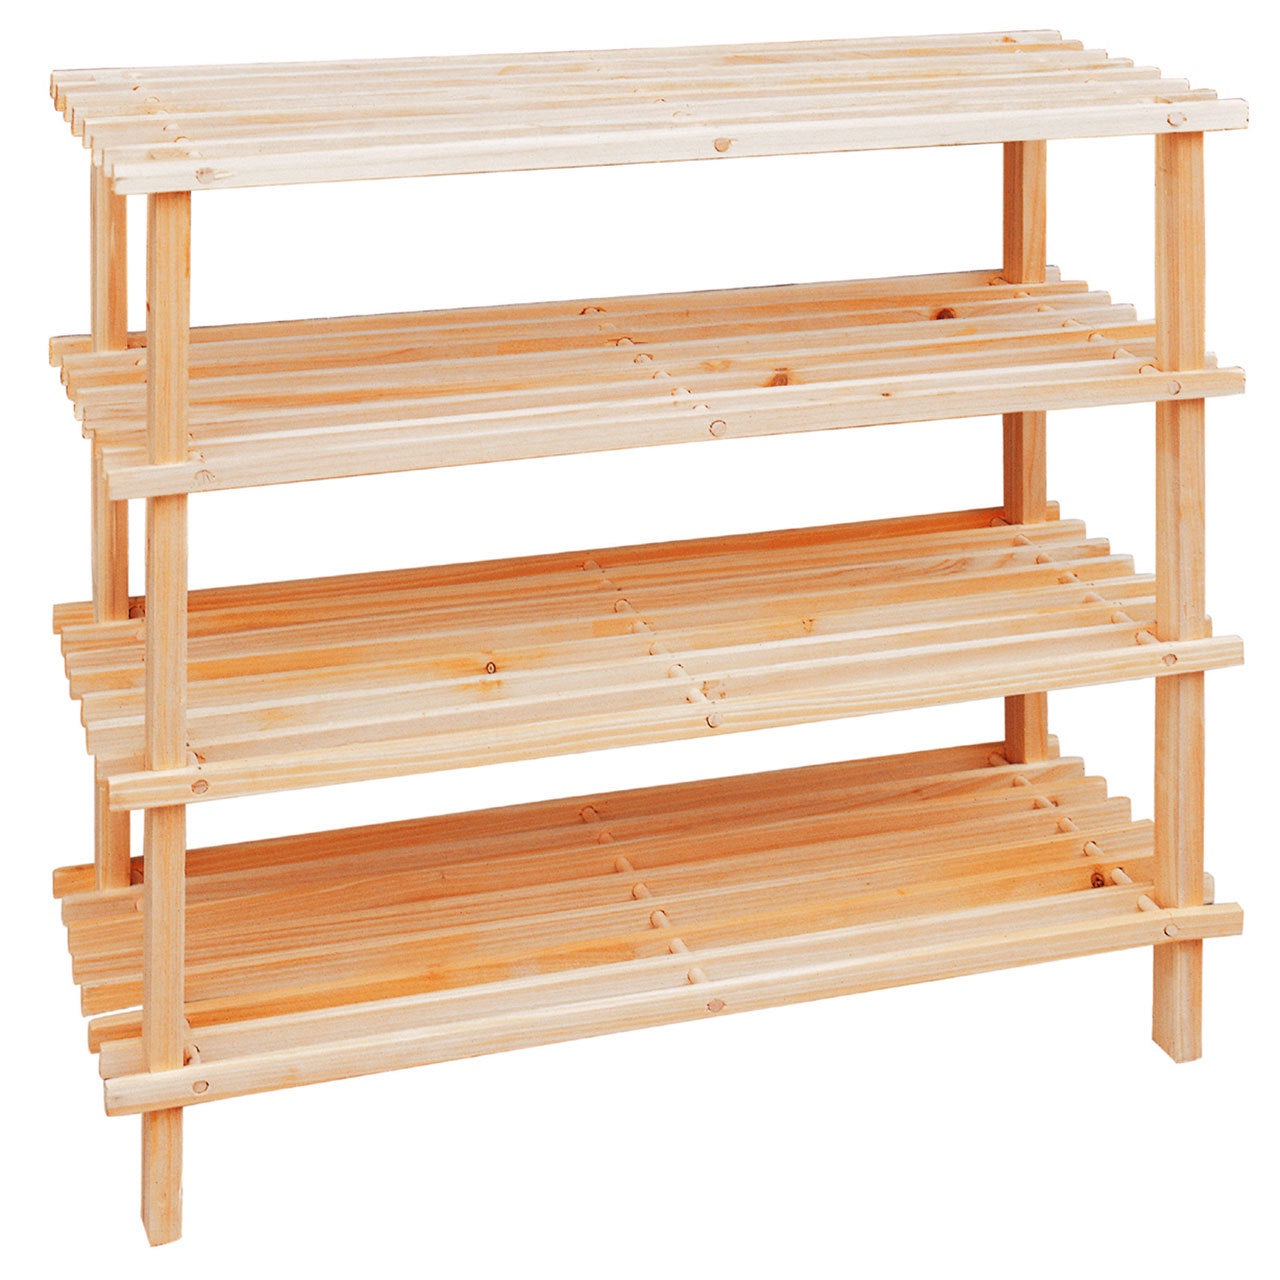 PREMIER 4 TIER SLATTED SHOE RACK NATURAL WOOD - 2400646